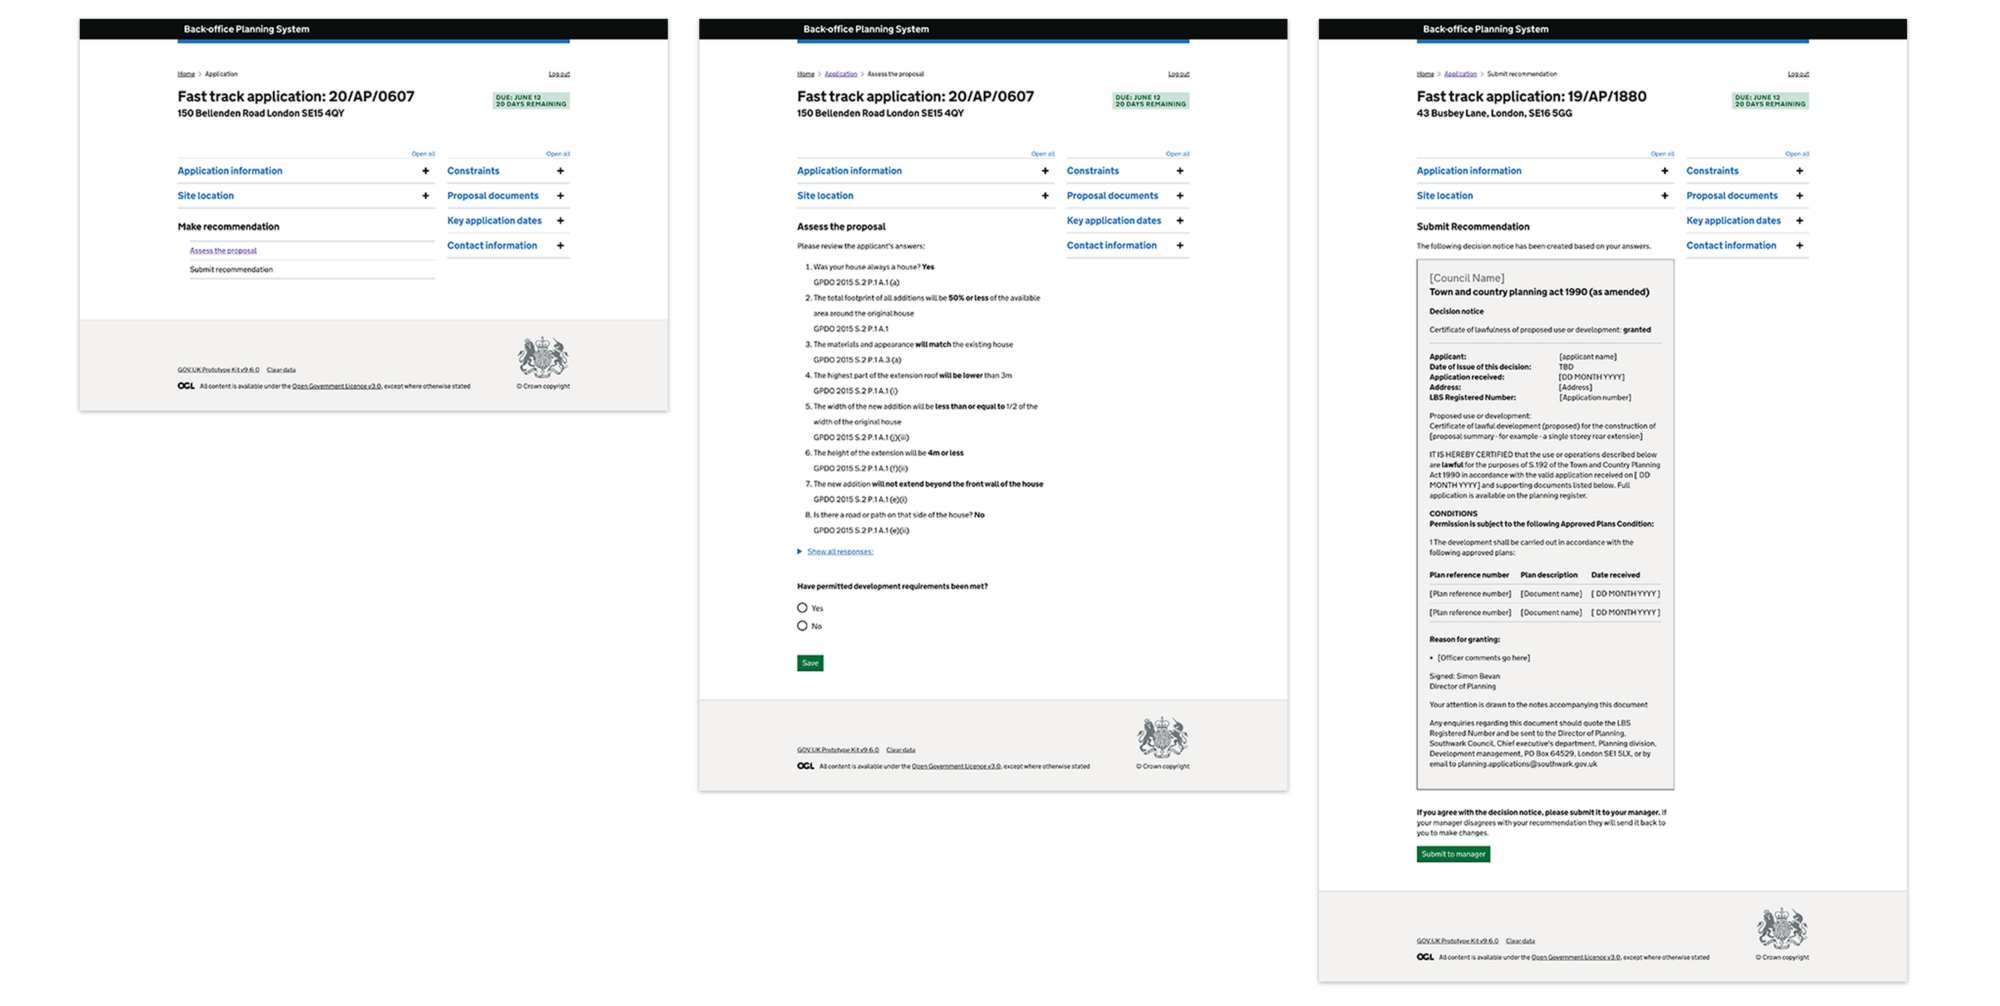 3 web page screenshots showing that the same page template is being used.